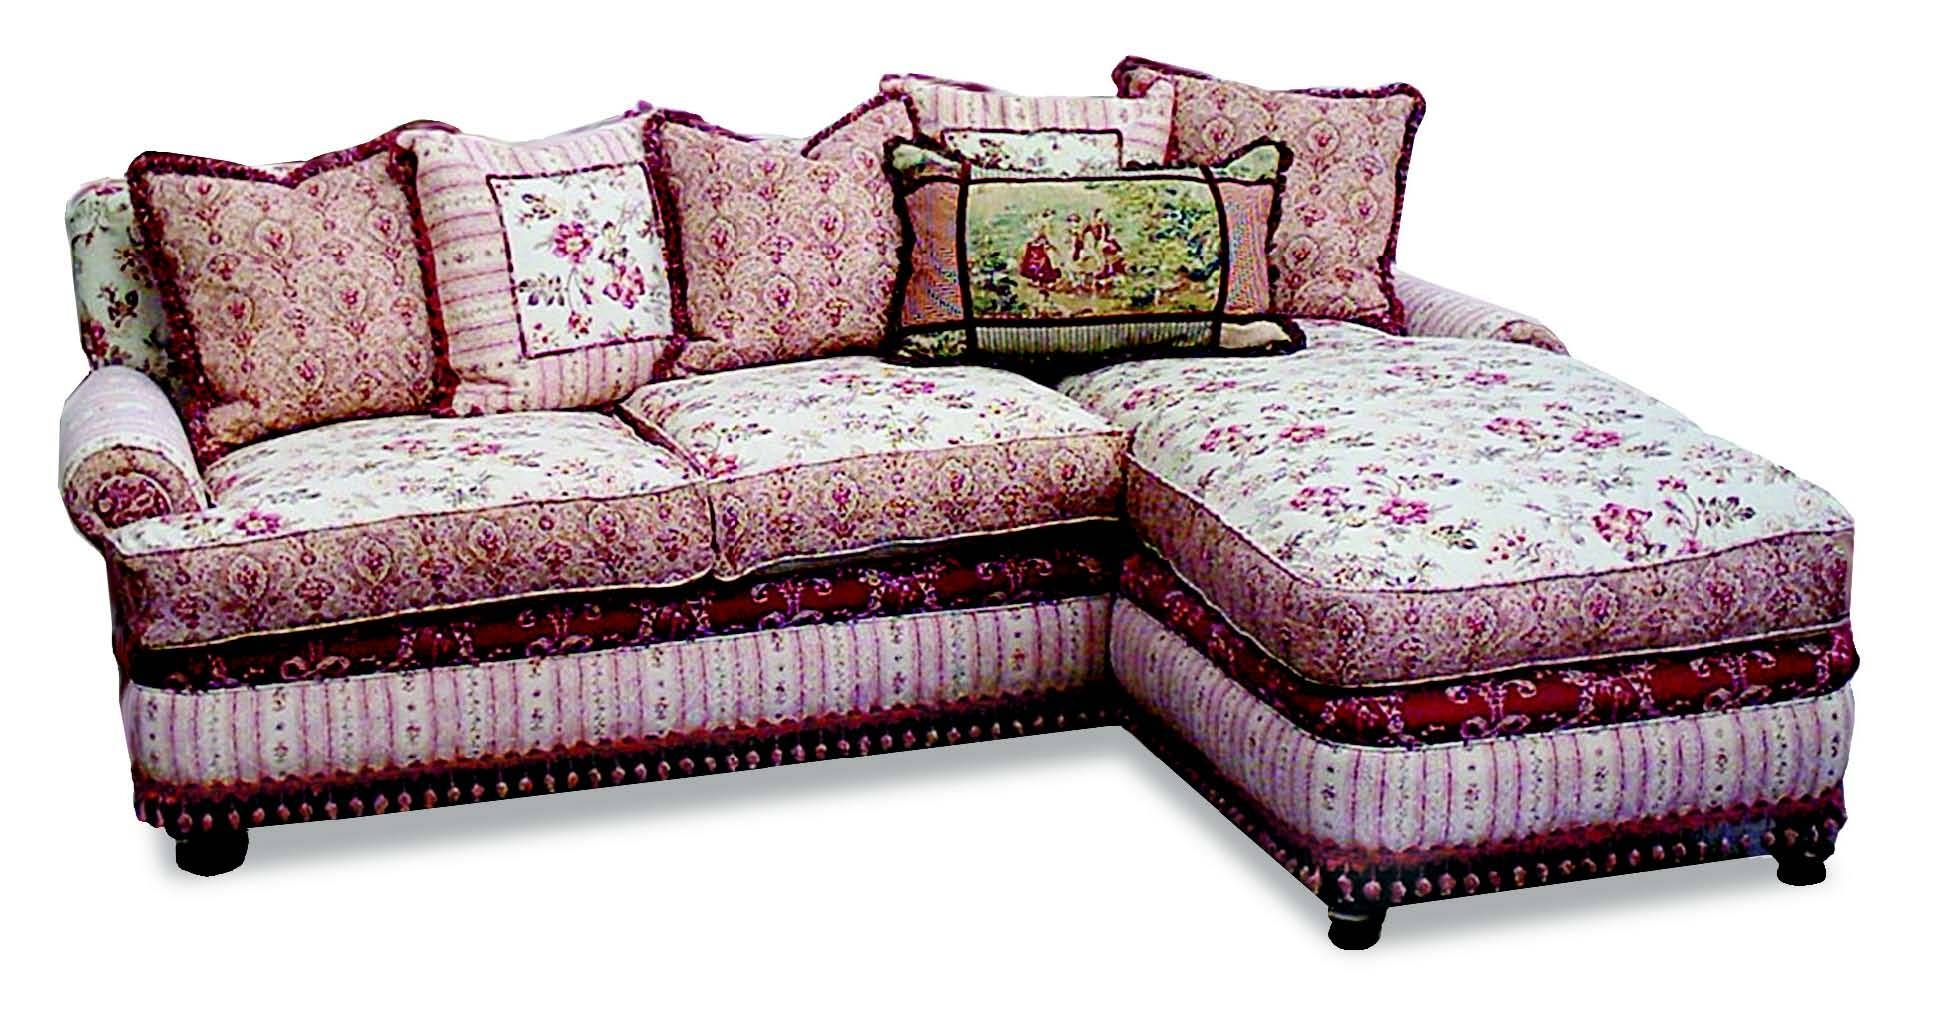 Furniture Home: Amusing Shabby Chic Sectional Sofa 16 For Your inside Shabby Chic Sectional Sofas Couches (Image 7 of 15)